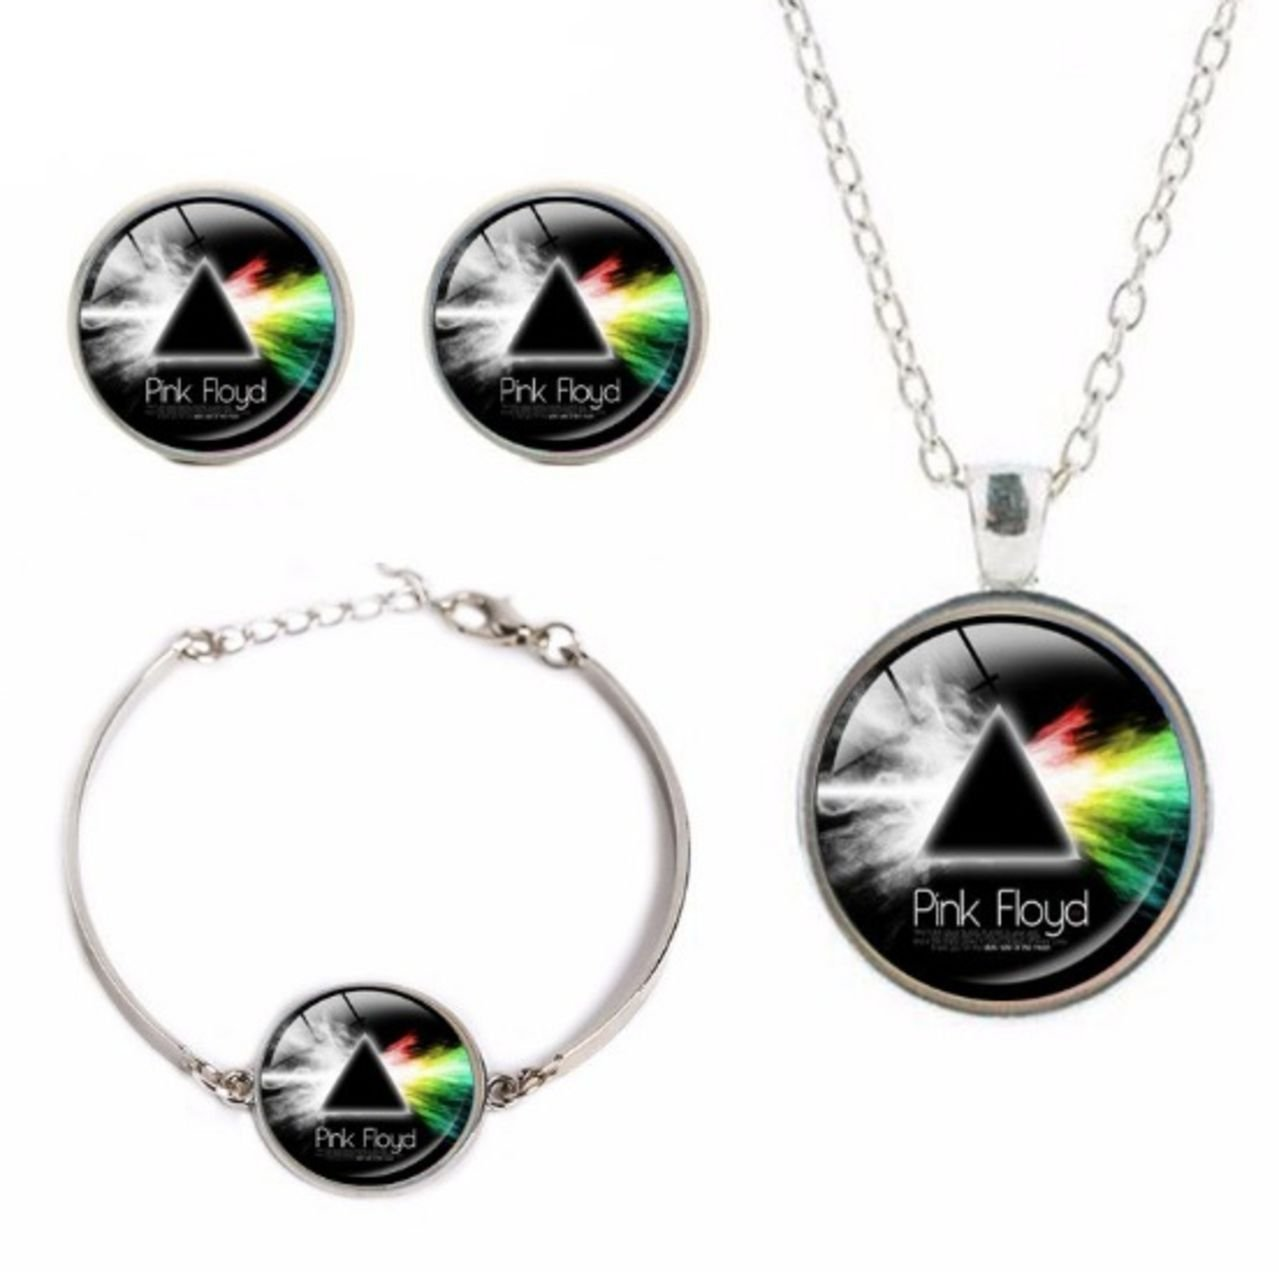 Pink Floyd Album Logo Glass Domed Pendant Necklace, Earring, Braclet Set